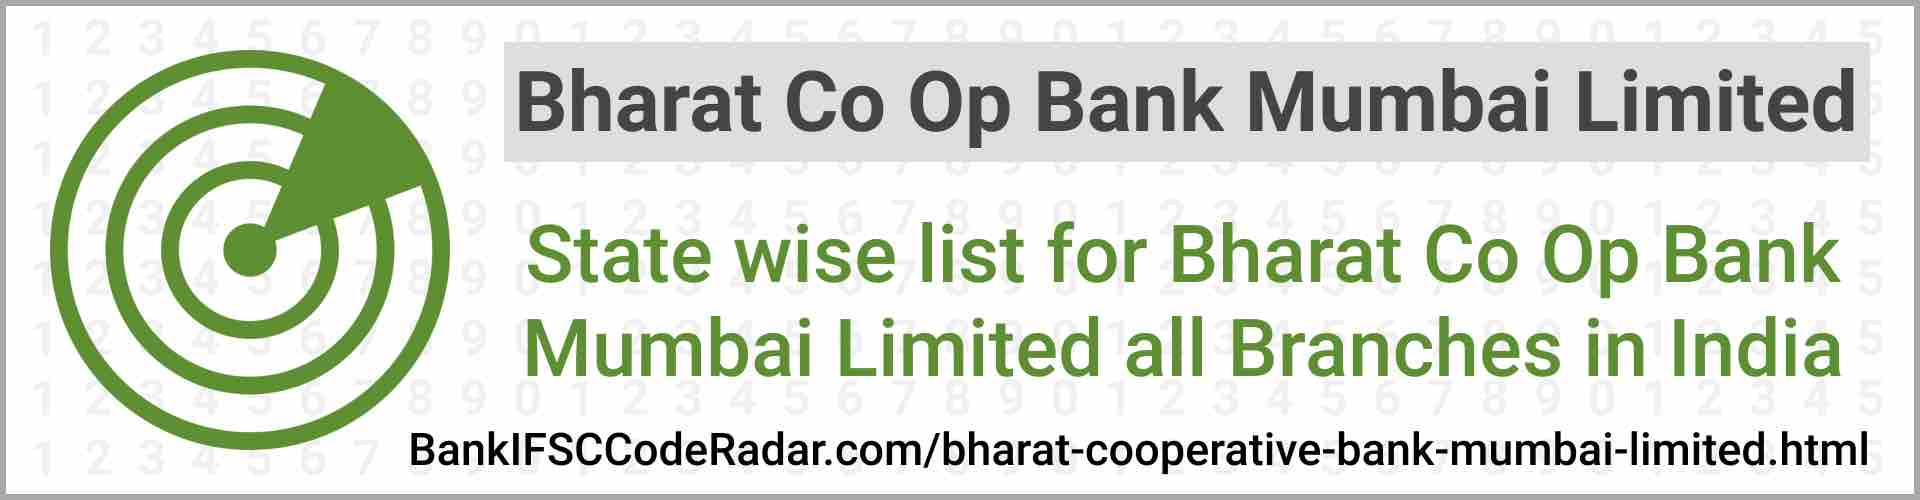 Bharat Cooperative Bank Mumbai Limited All Branches India